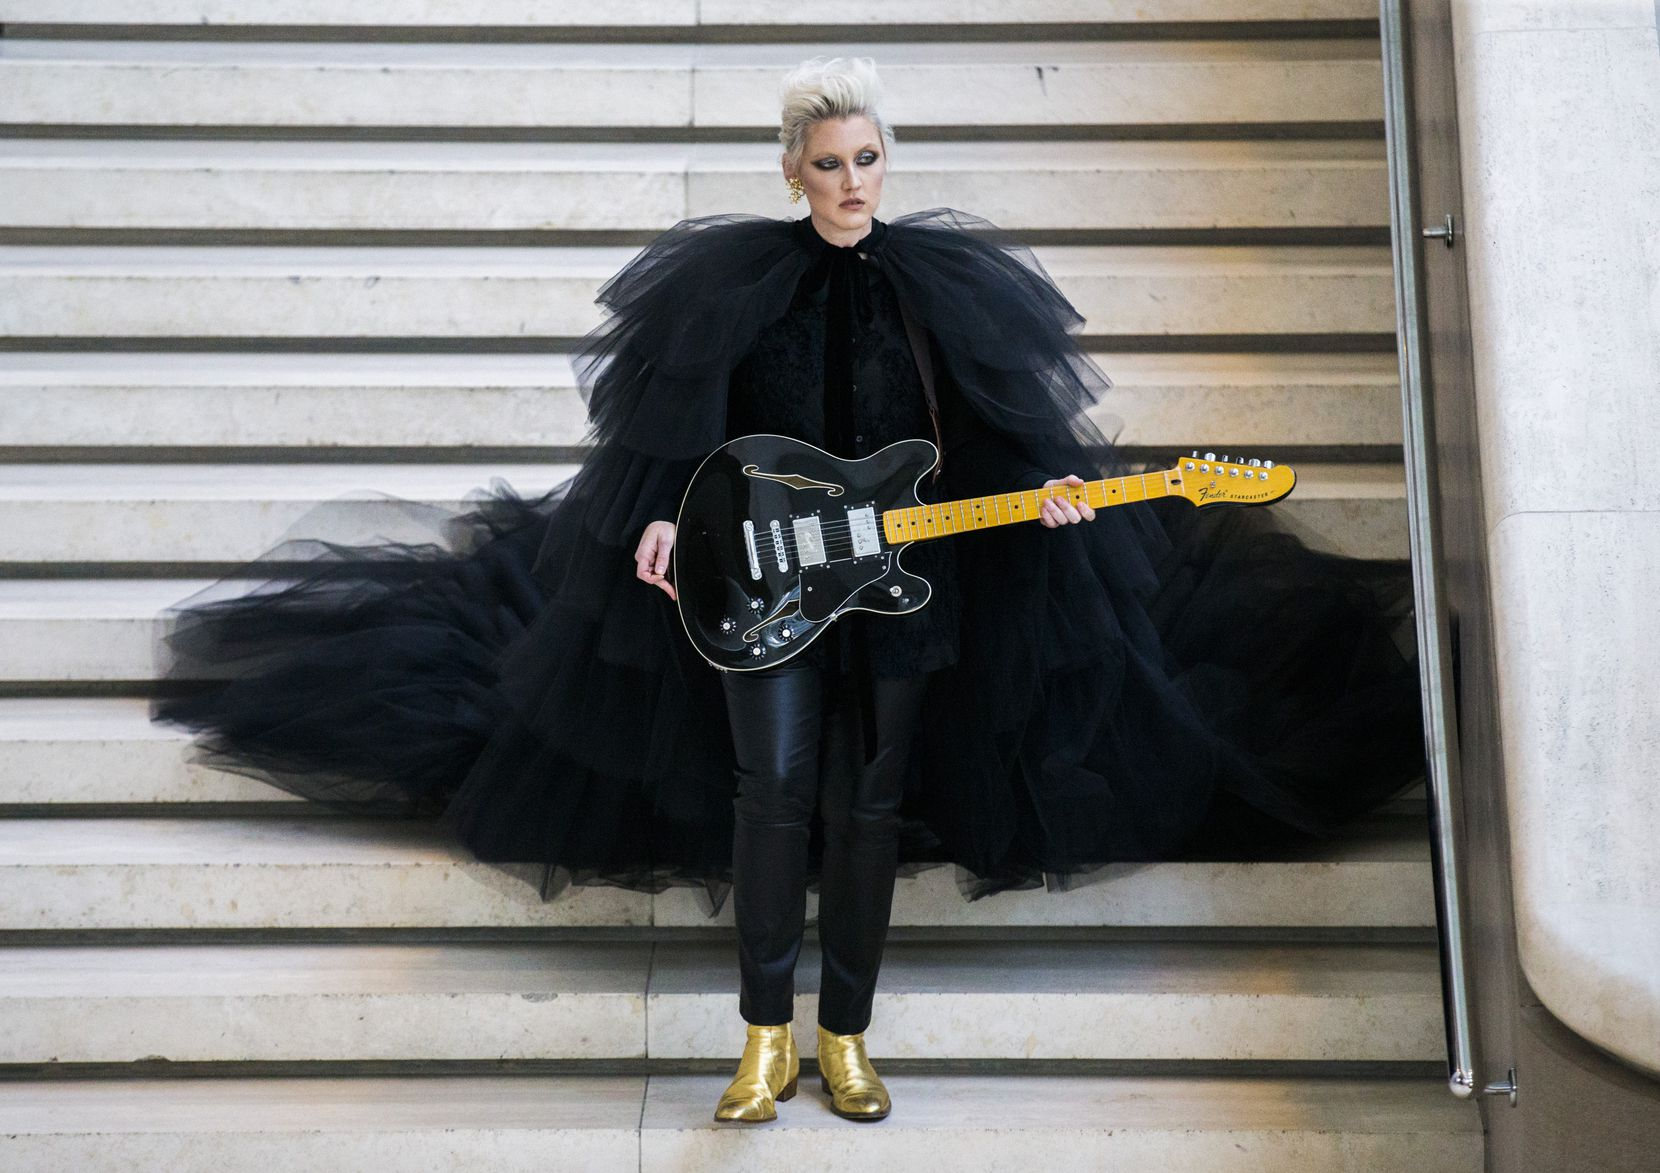 """Musician Sarah Jaffe performs during a pop-up performance entitled """"Eyes as Bright as Diamonds"""" to kick off the Soluna International Music & Arts Festival on April 11, 2018 at the Morton H. Meyerson Symphony Center in Dallas. The performance brought together New York artist Jen Ray, musician Sarah Jaffe and several Dallas performers."""